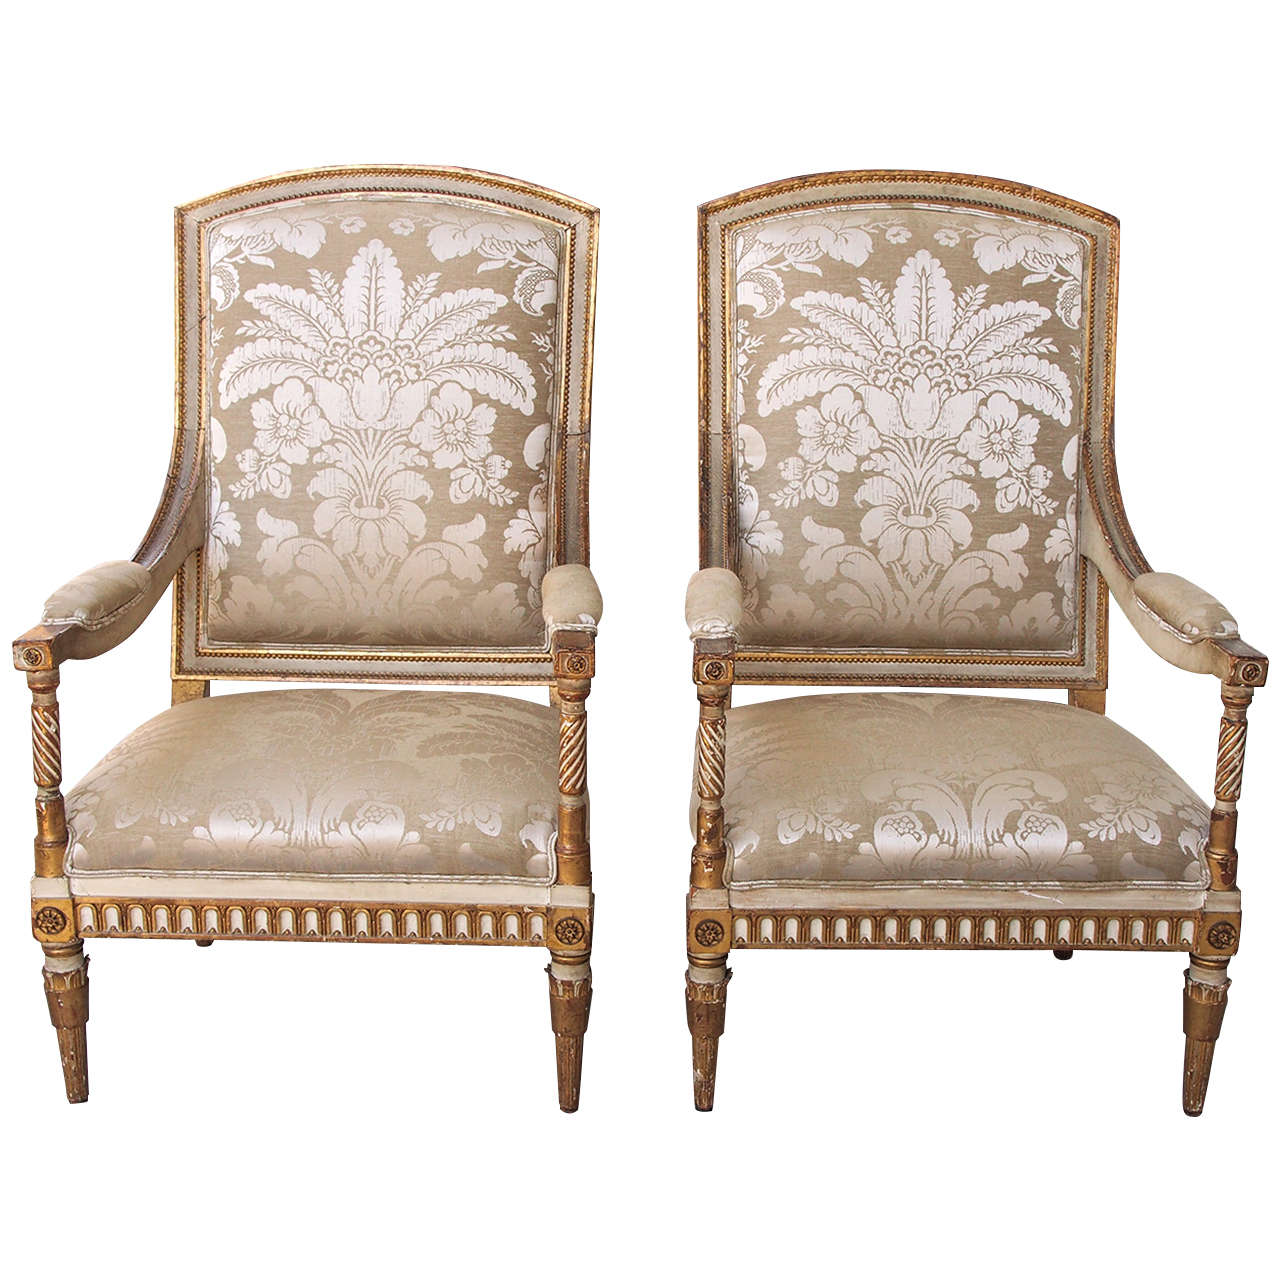 Italian Louis XVI Style Painted and Parcel-Gilt Armchairs